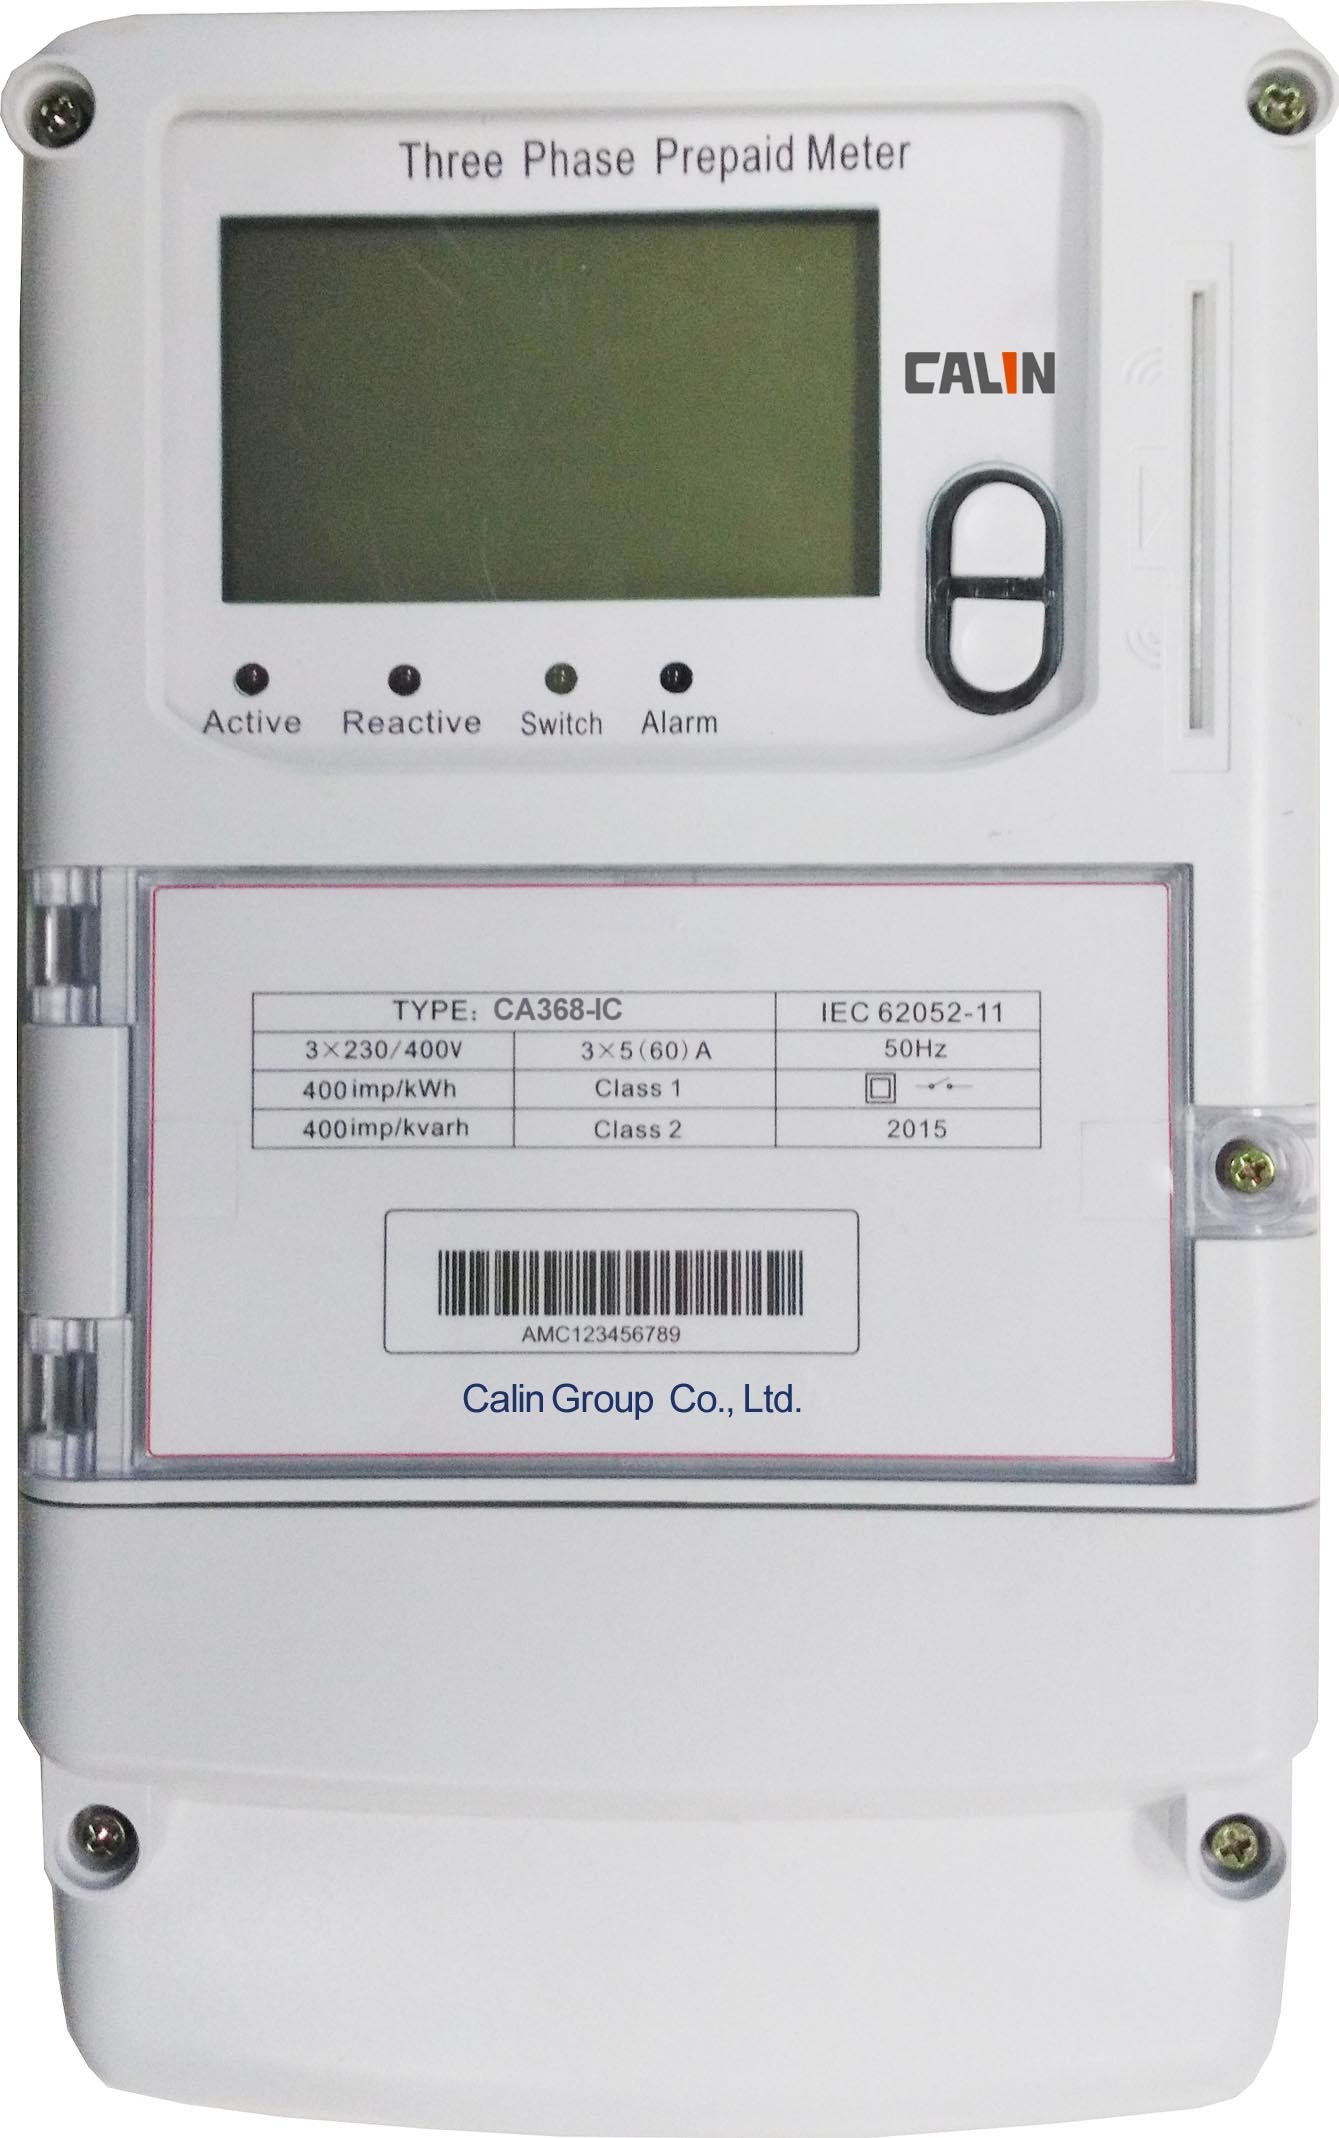 Three Phase Sts IC Card Prepaid Energy Meter